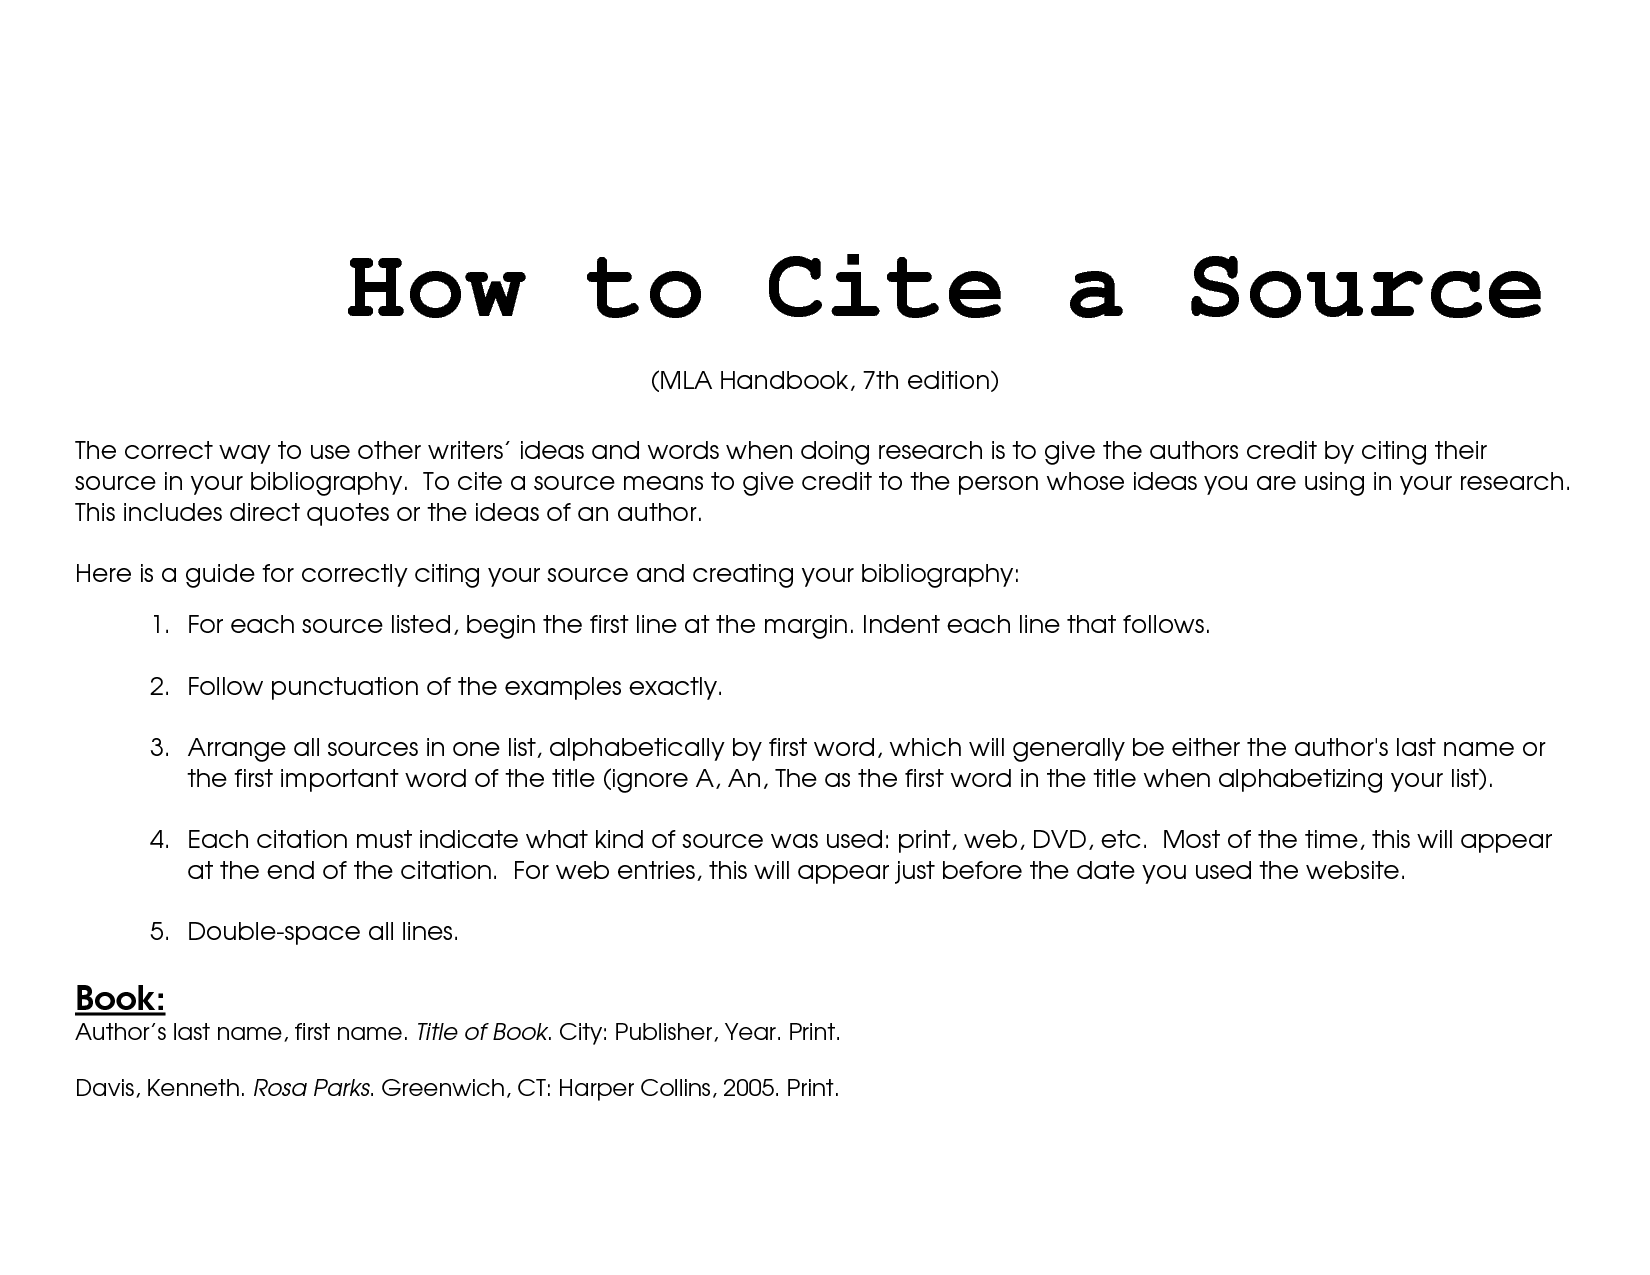 How To Cite Sources In Essay Citing Sources In Mla Style Enc1102